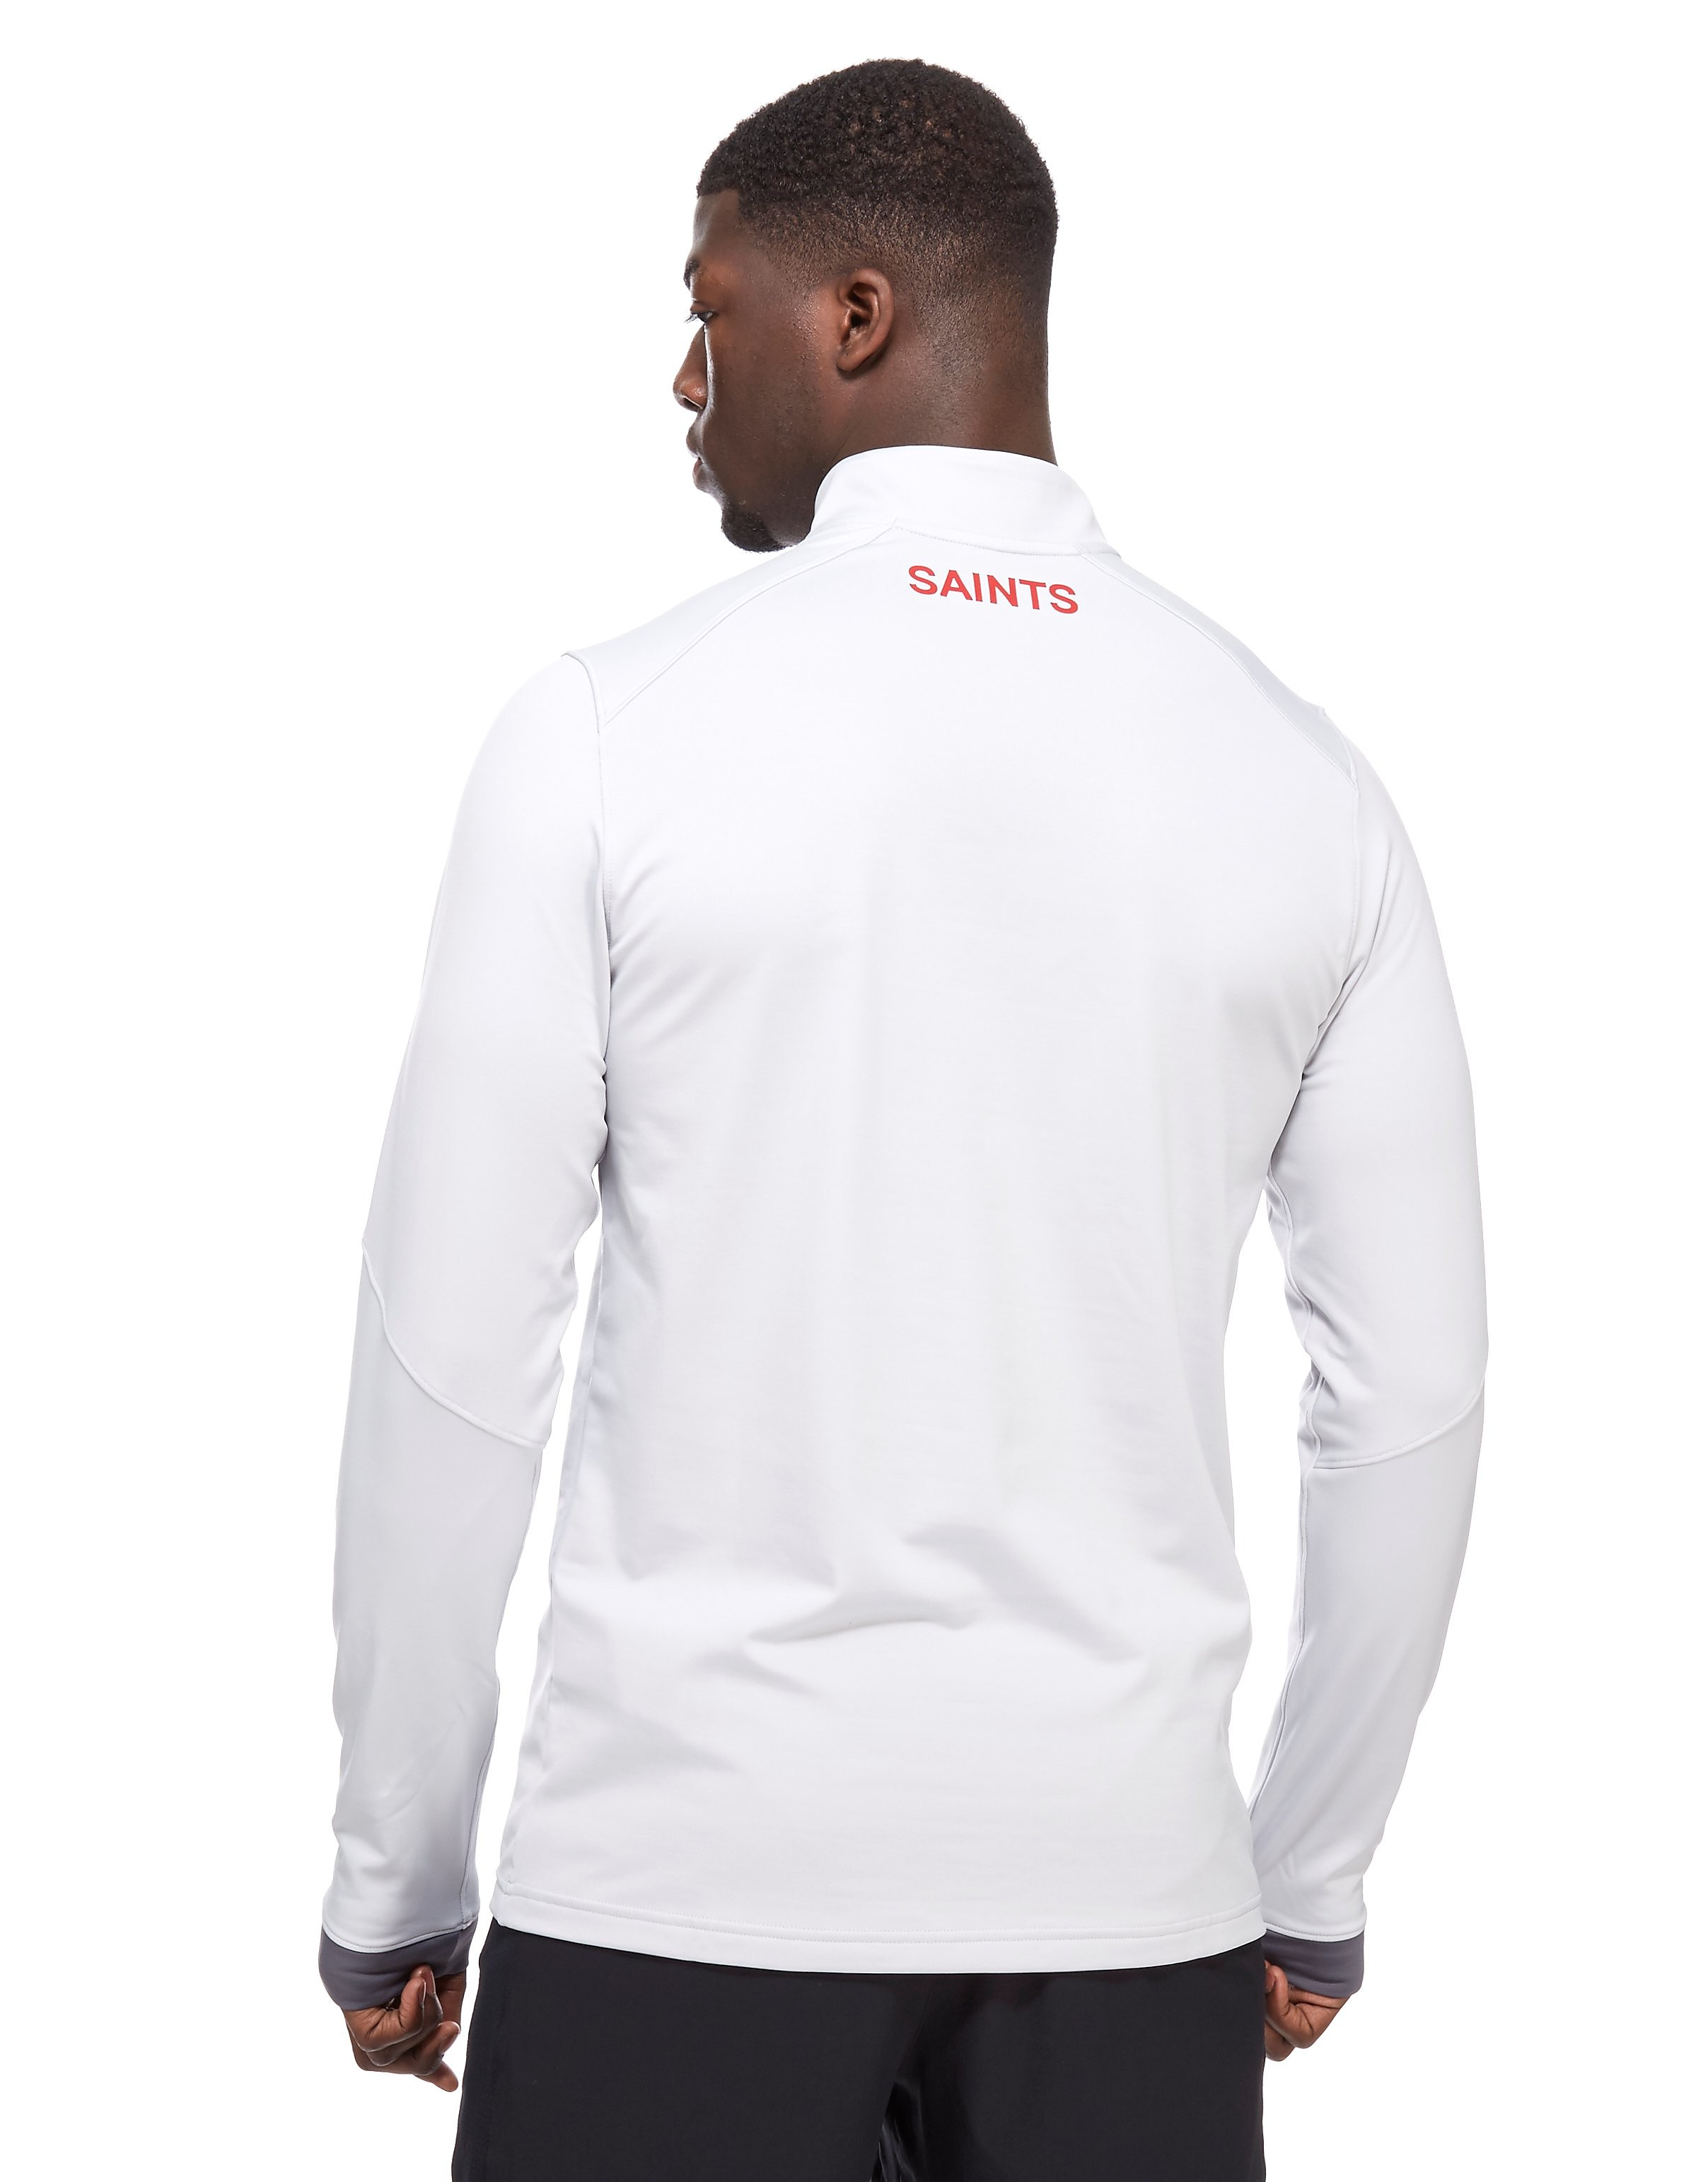 Under Armour Southampton FC 1/4 Zip Top